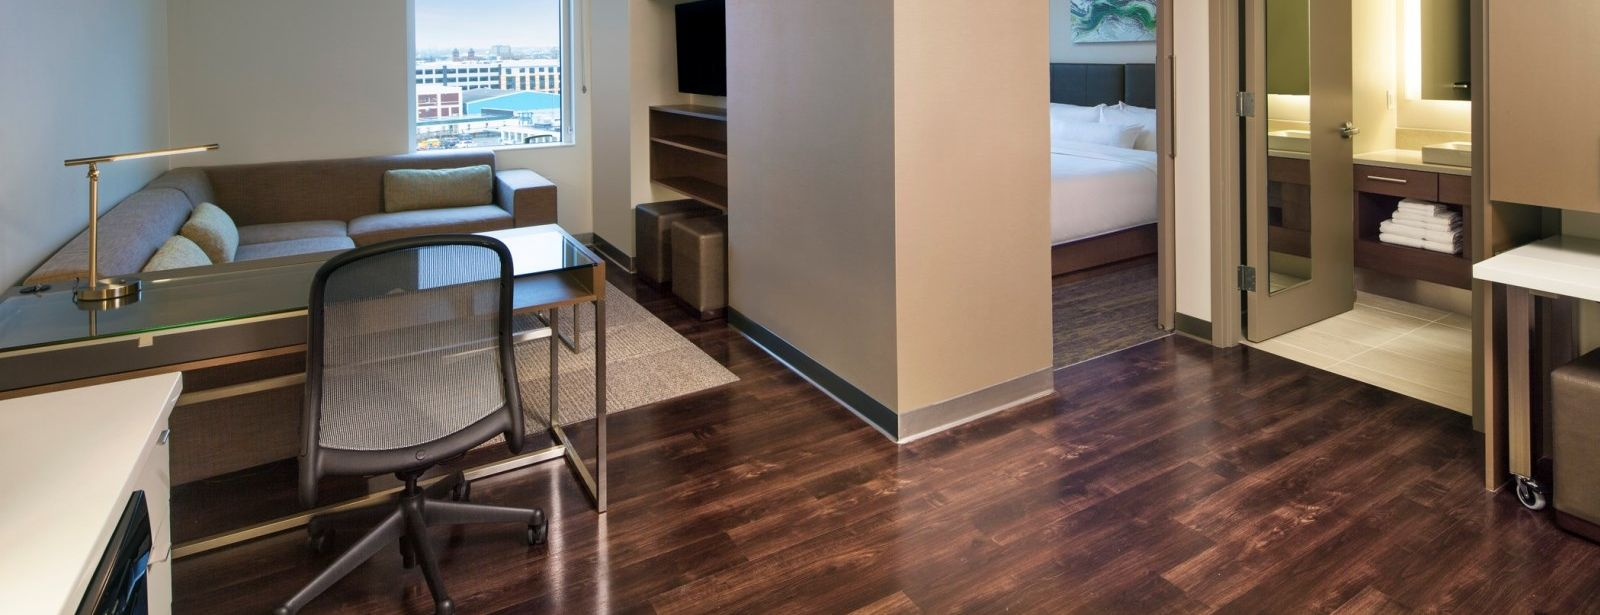 Seaport Accommodations - One Bedroom Suite